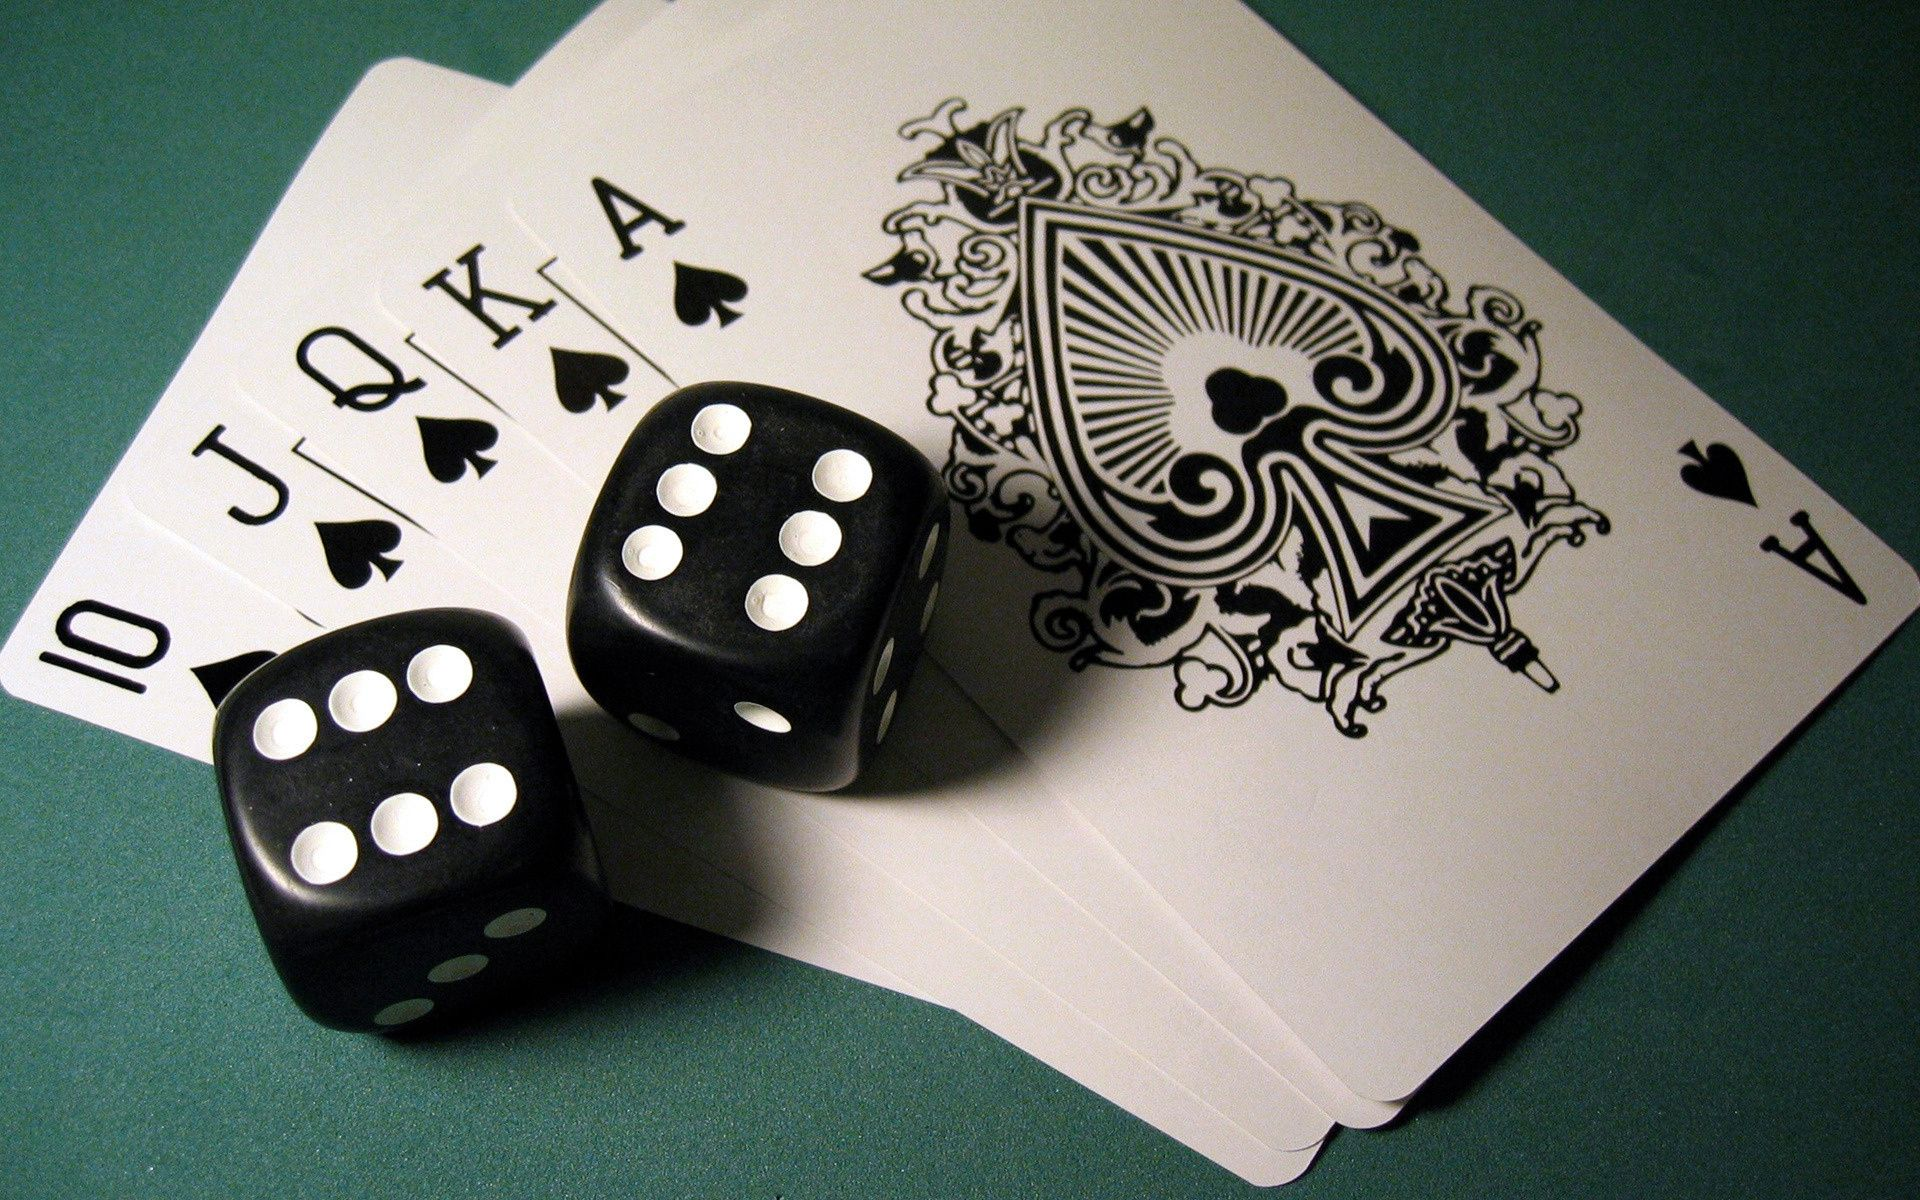 gambling casino chance poker risk luck dice ace lucky play win leisure game success gambler wealth winner money business